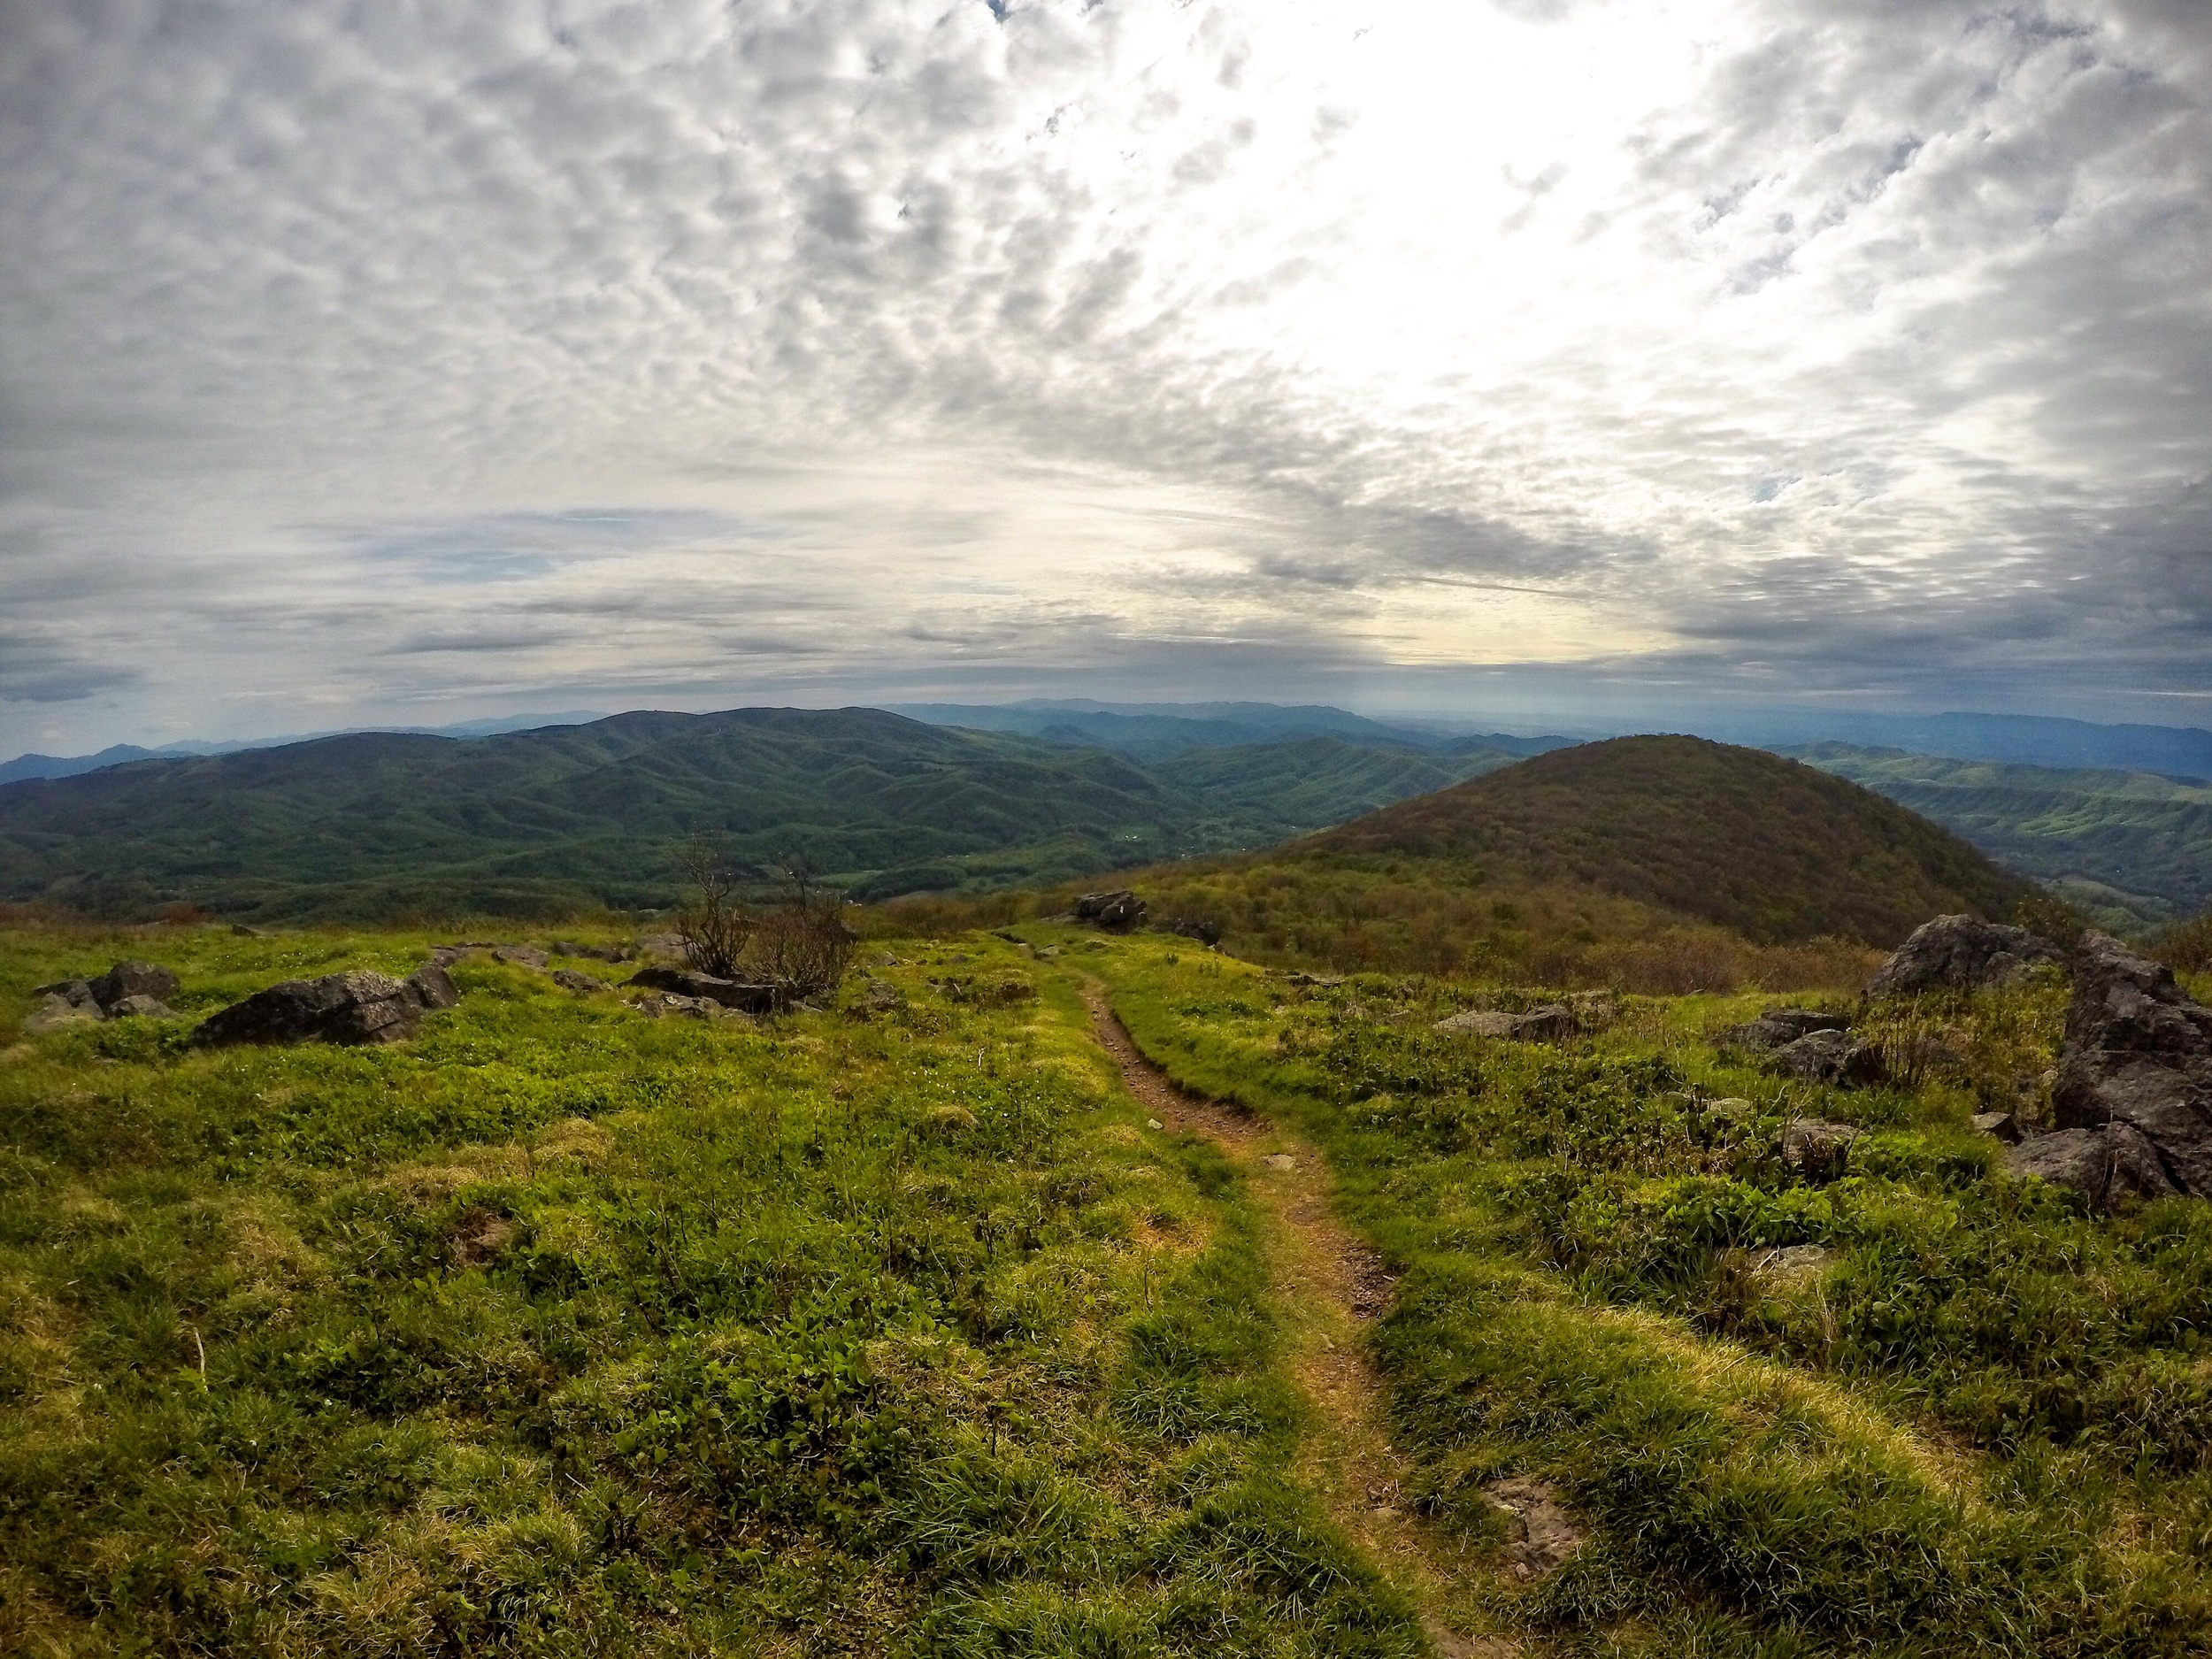 At least the hike out of Damascus was beautiful! This is on Whitetop mountain, the 2nd tallest peak in Virginia.